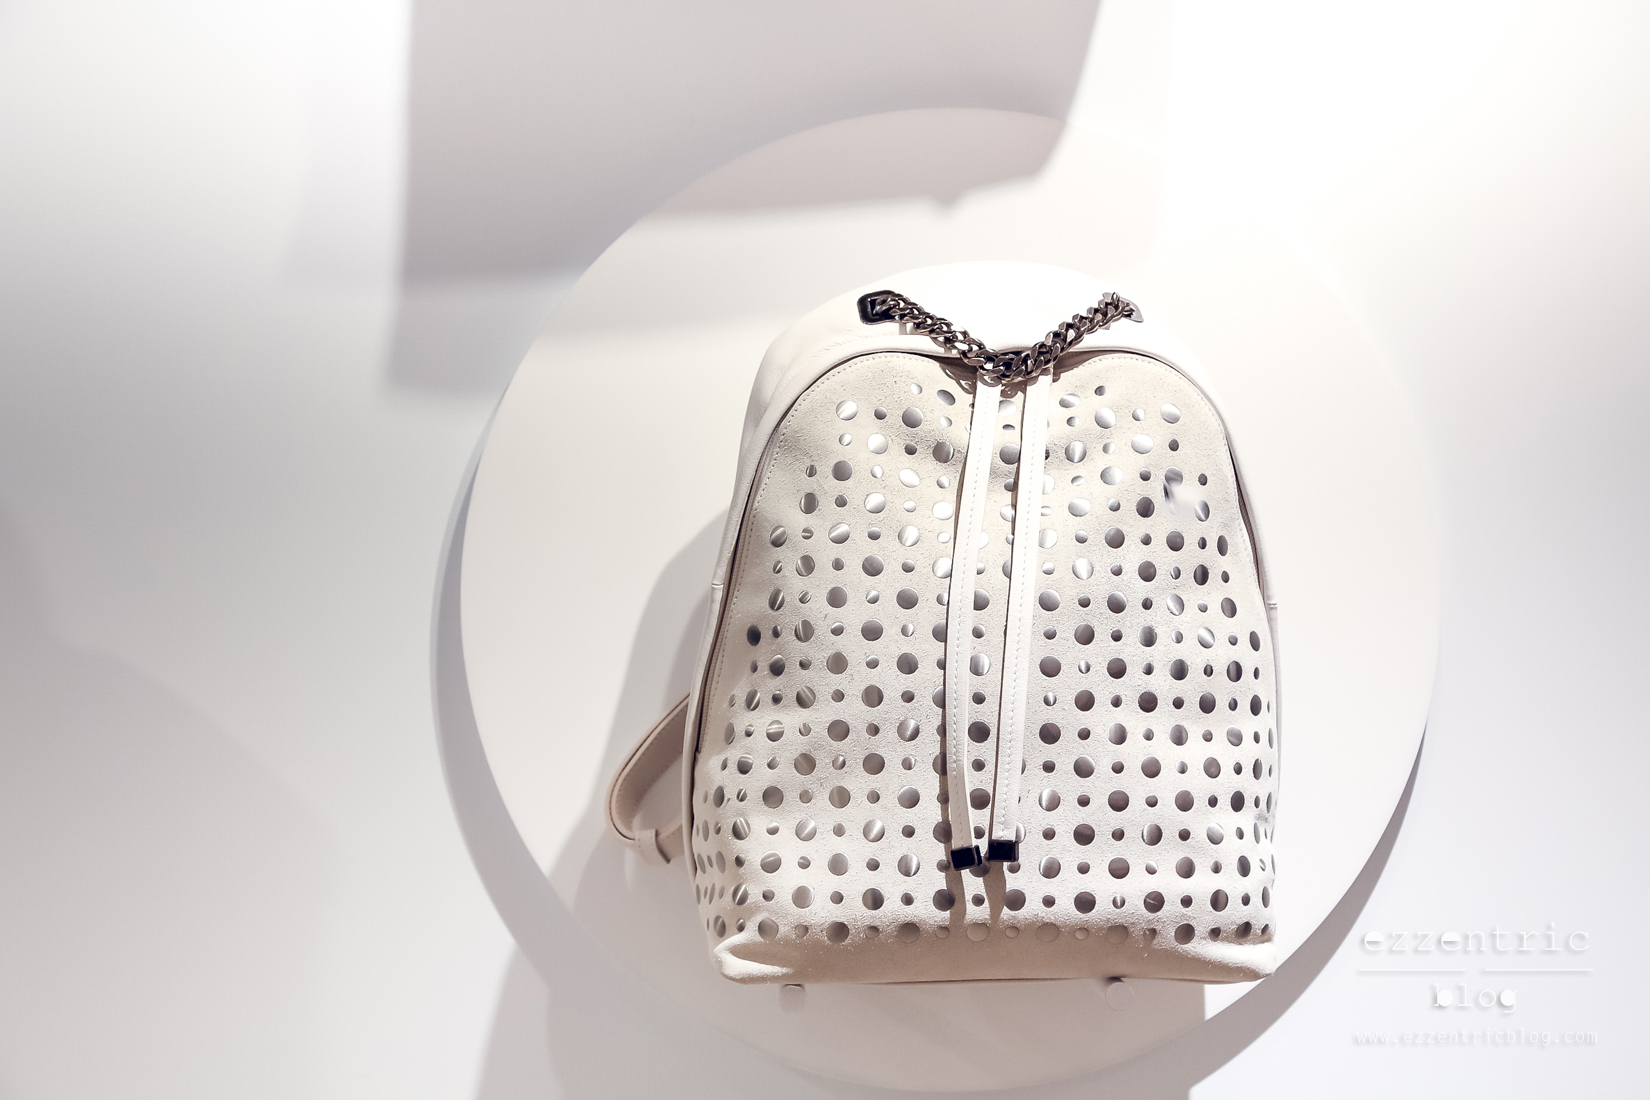 Furla SS 15 Handbags Preview 01